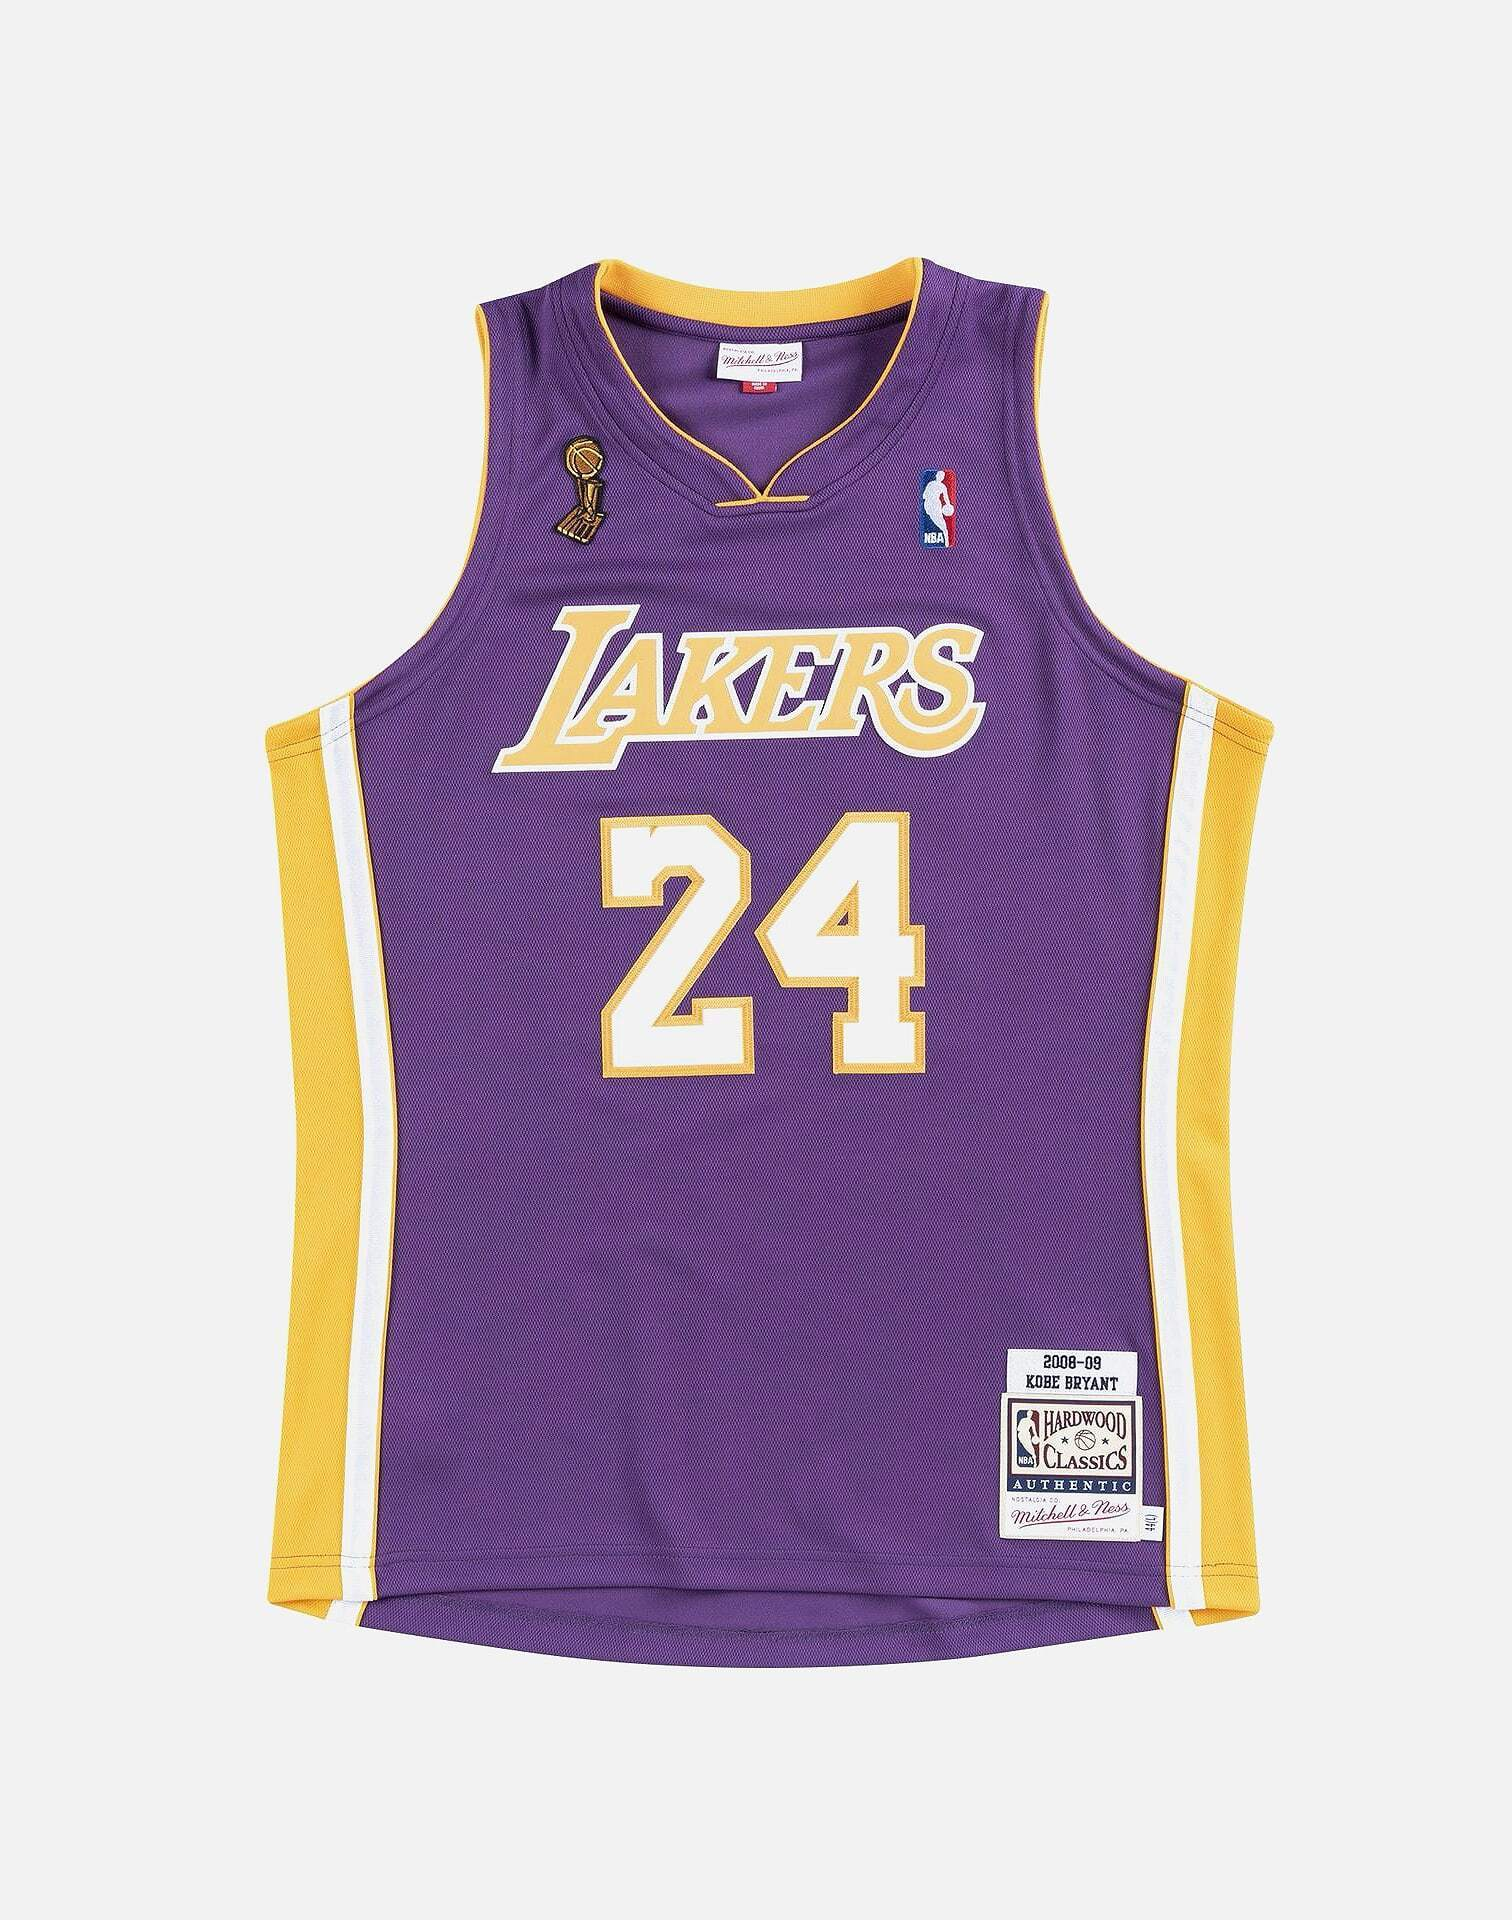 LOS ANGELES LAKERS KOBE BRYANT #24 AUTHENTIC JERSEY